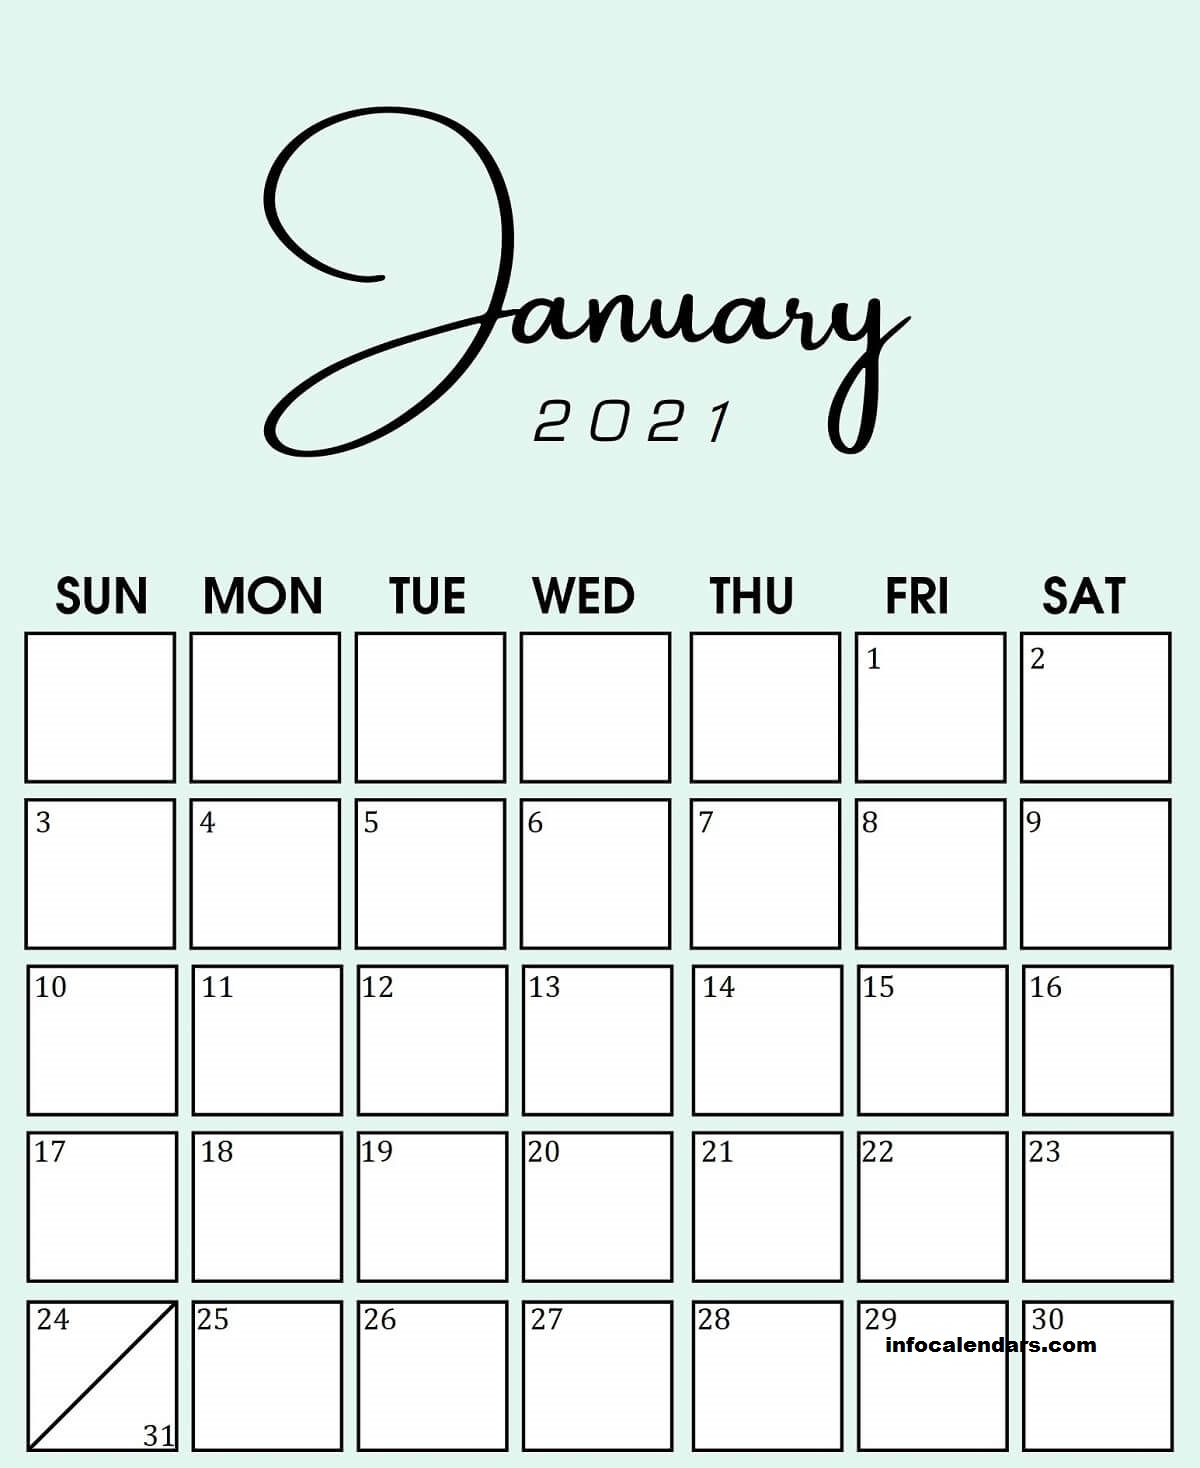 Printable January 2021 Calendar Colorful